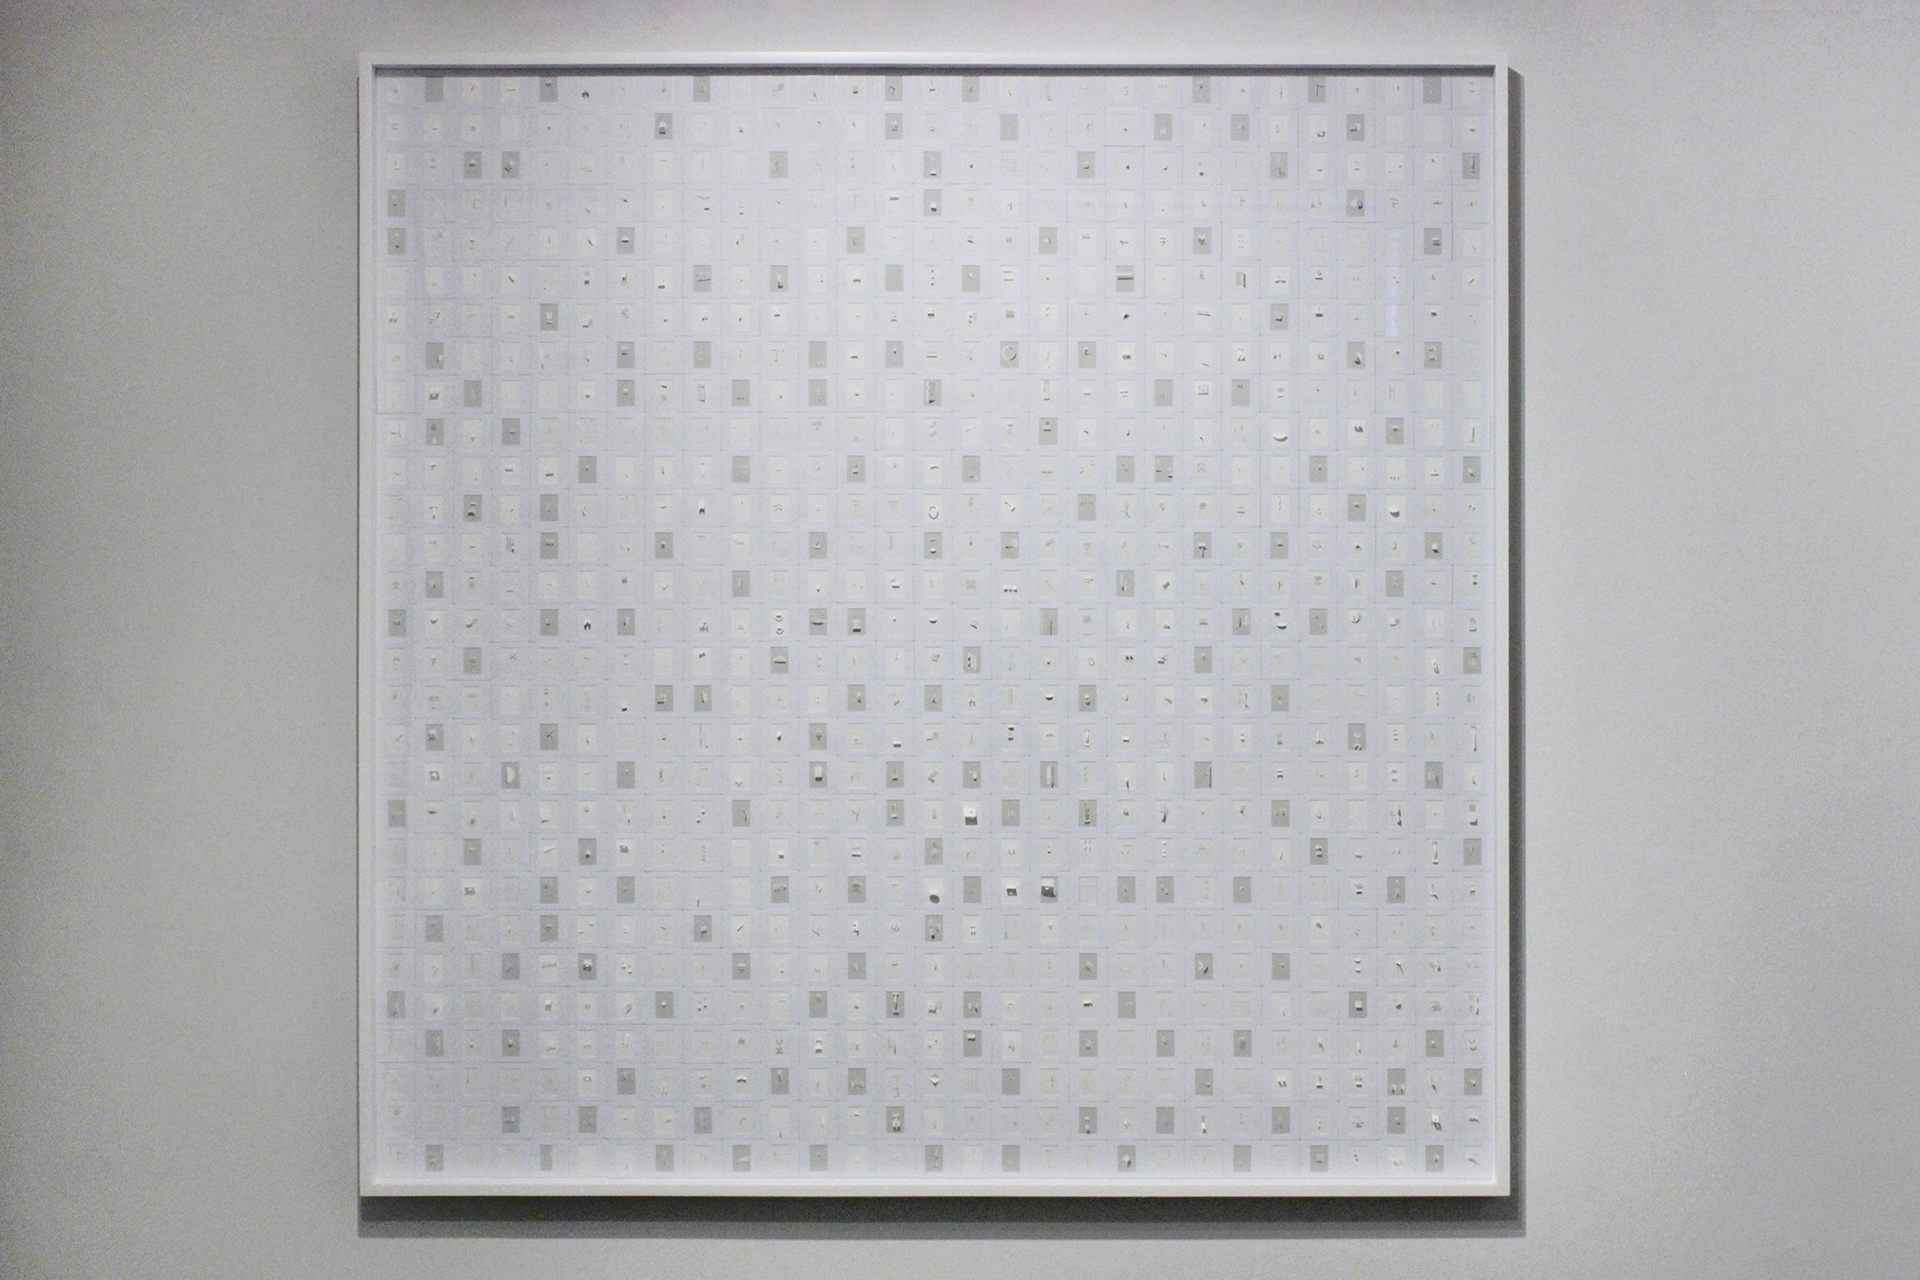 MARCO MAGGI   SPELLING SQUARE (G & W), 2016   CUTS AND FOLDS ON 841 WHITE AND GREY ARCHIVAL PAPERS IN 35MM SLIDE MOUNTS ON SINTRA   59 X 59 INCHES, 60 X 60 INCHES FRAMED   MM229